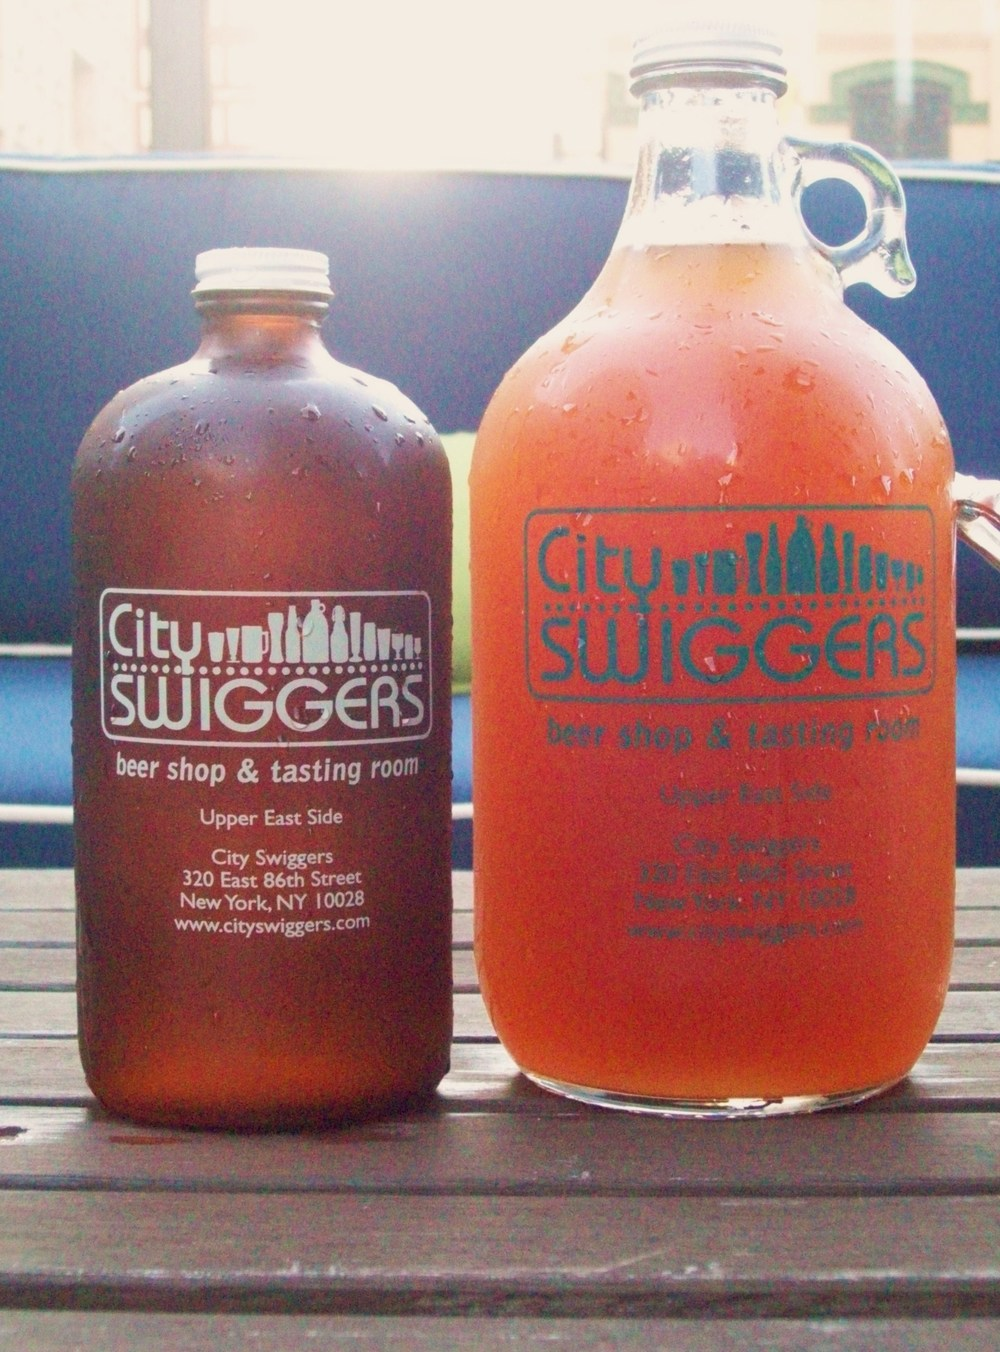 Growlers from City Swiggers